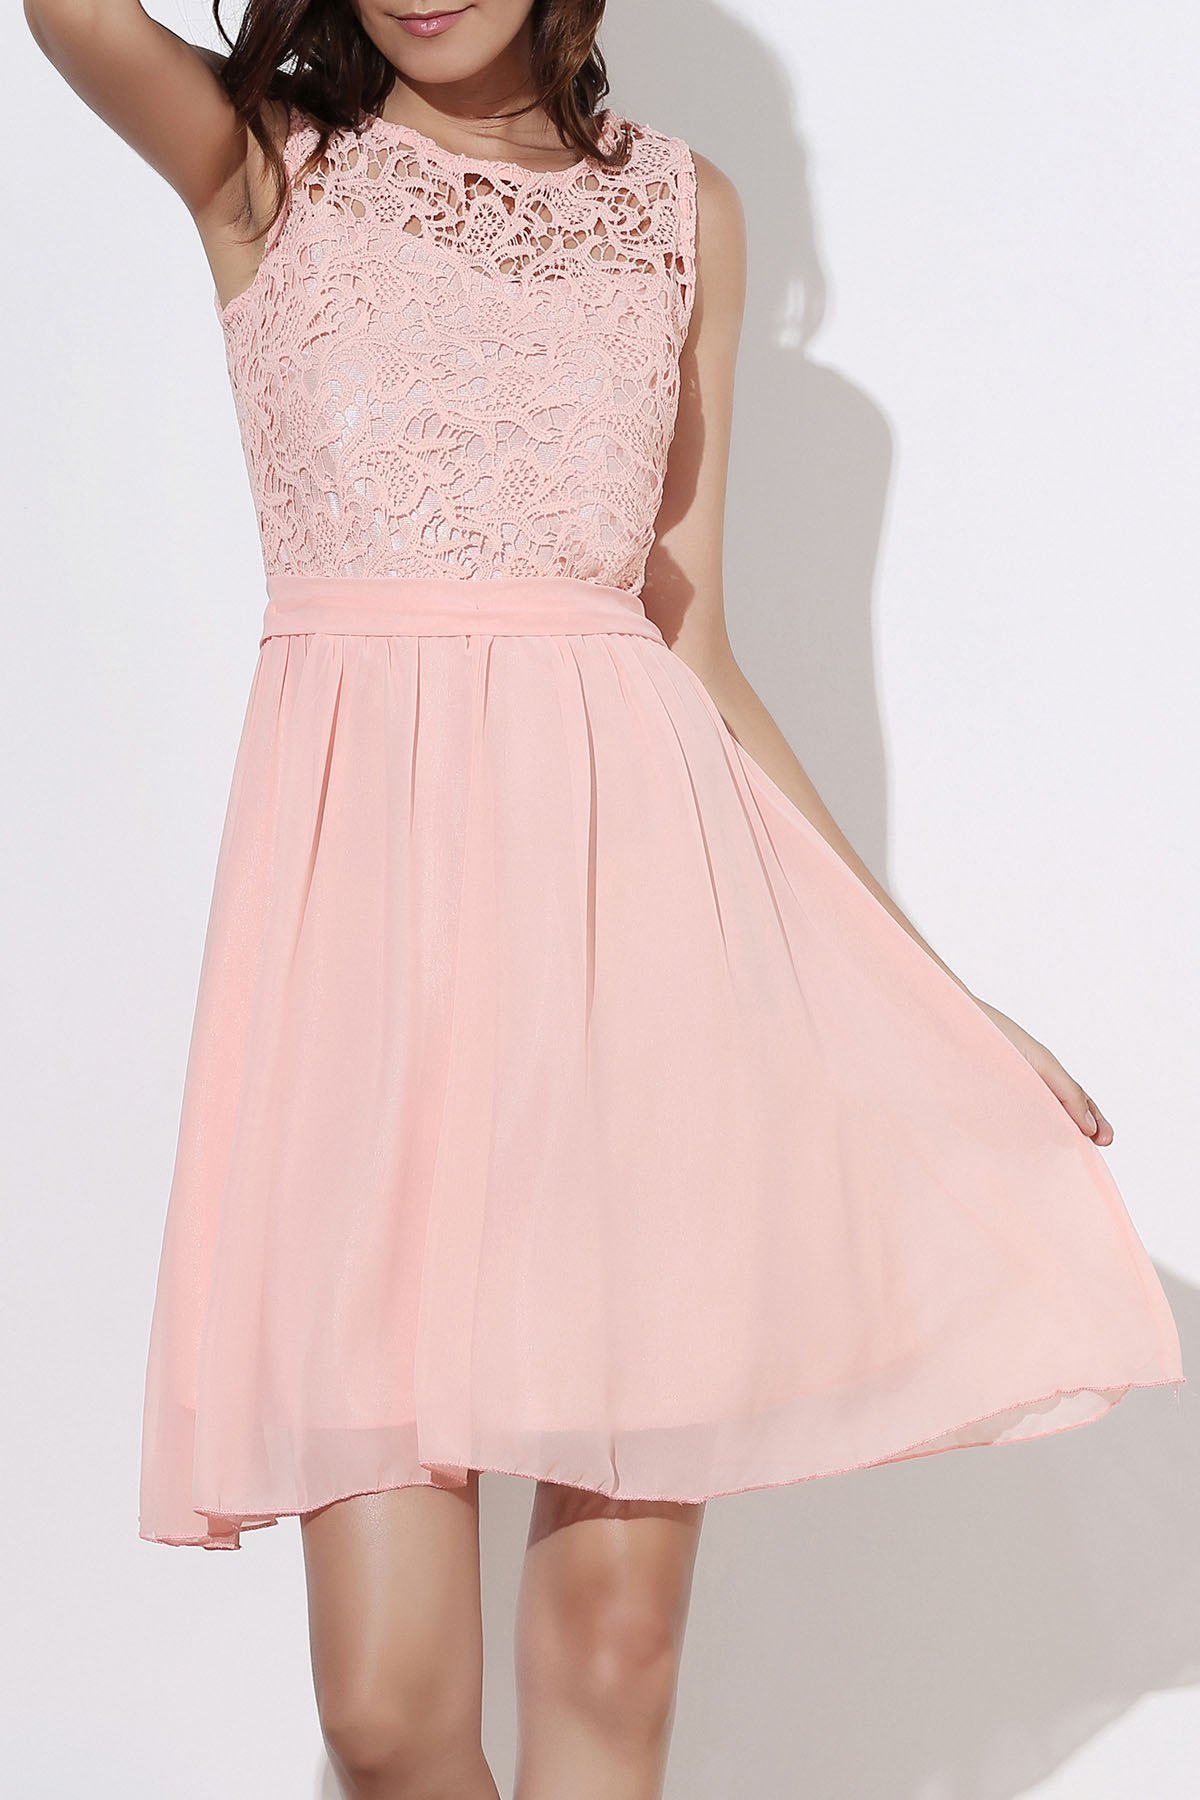 Round Collar Sleeveless Dress - LIGHT PINK S